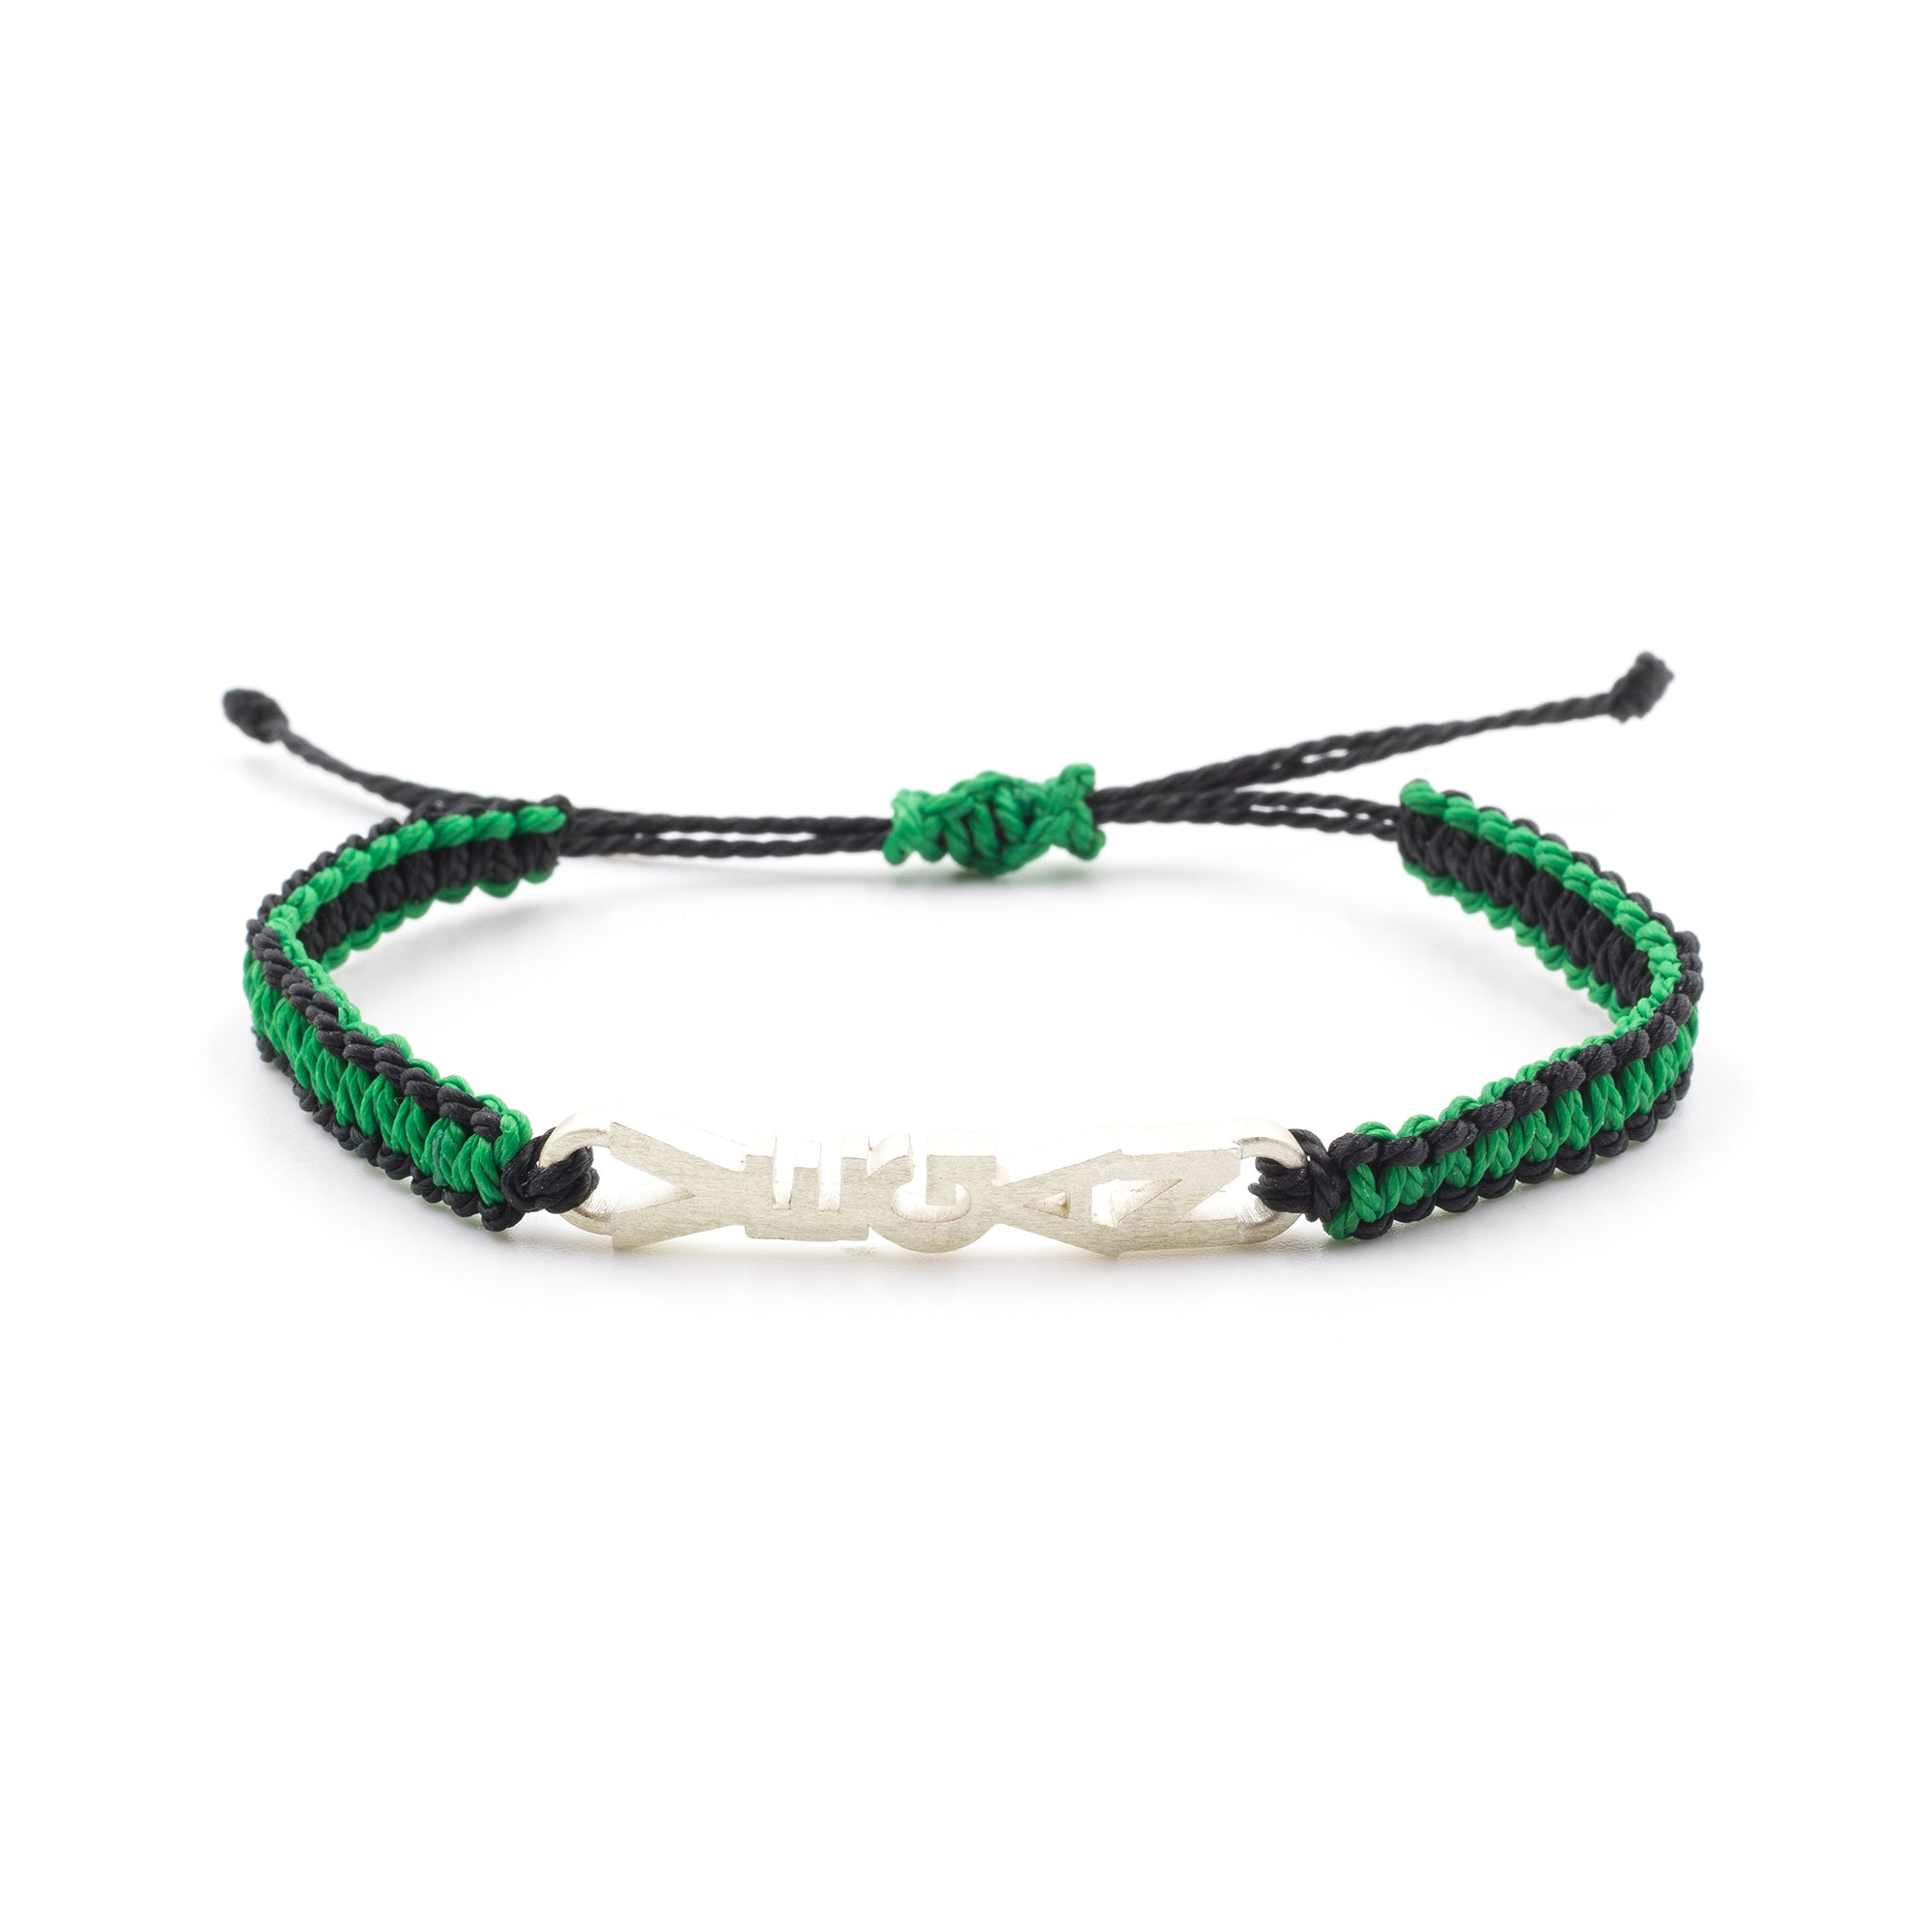 Vegan bracelet green, black